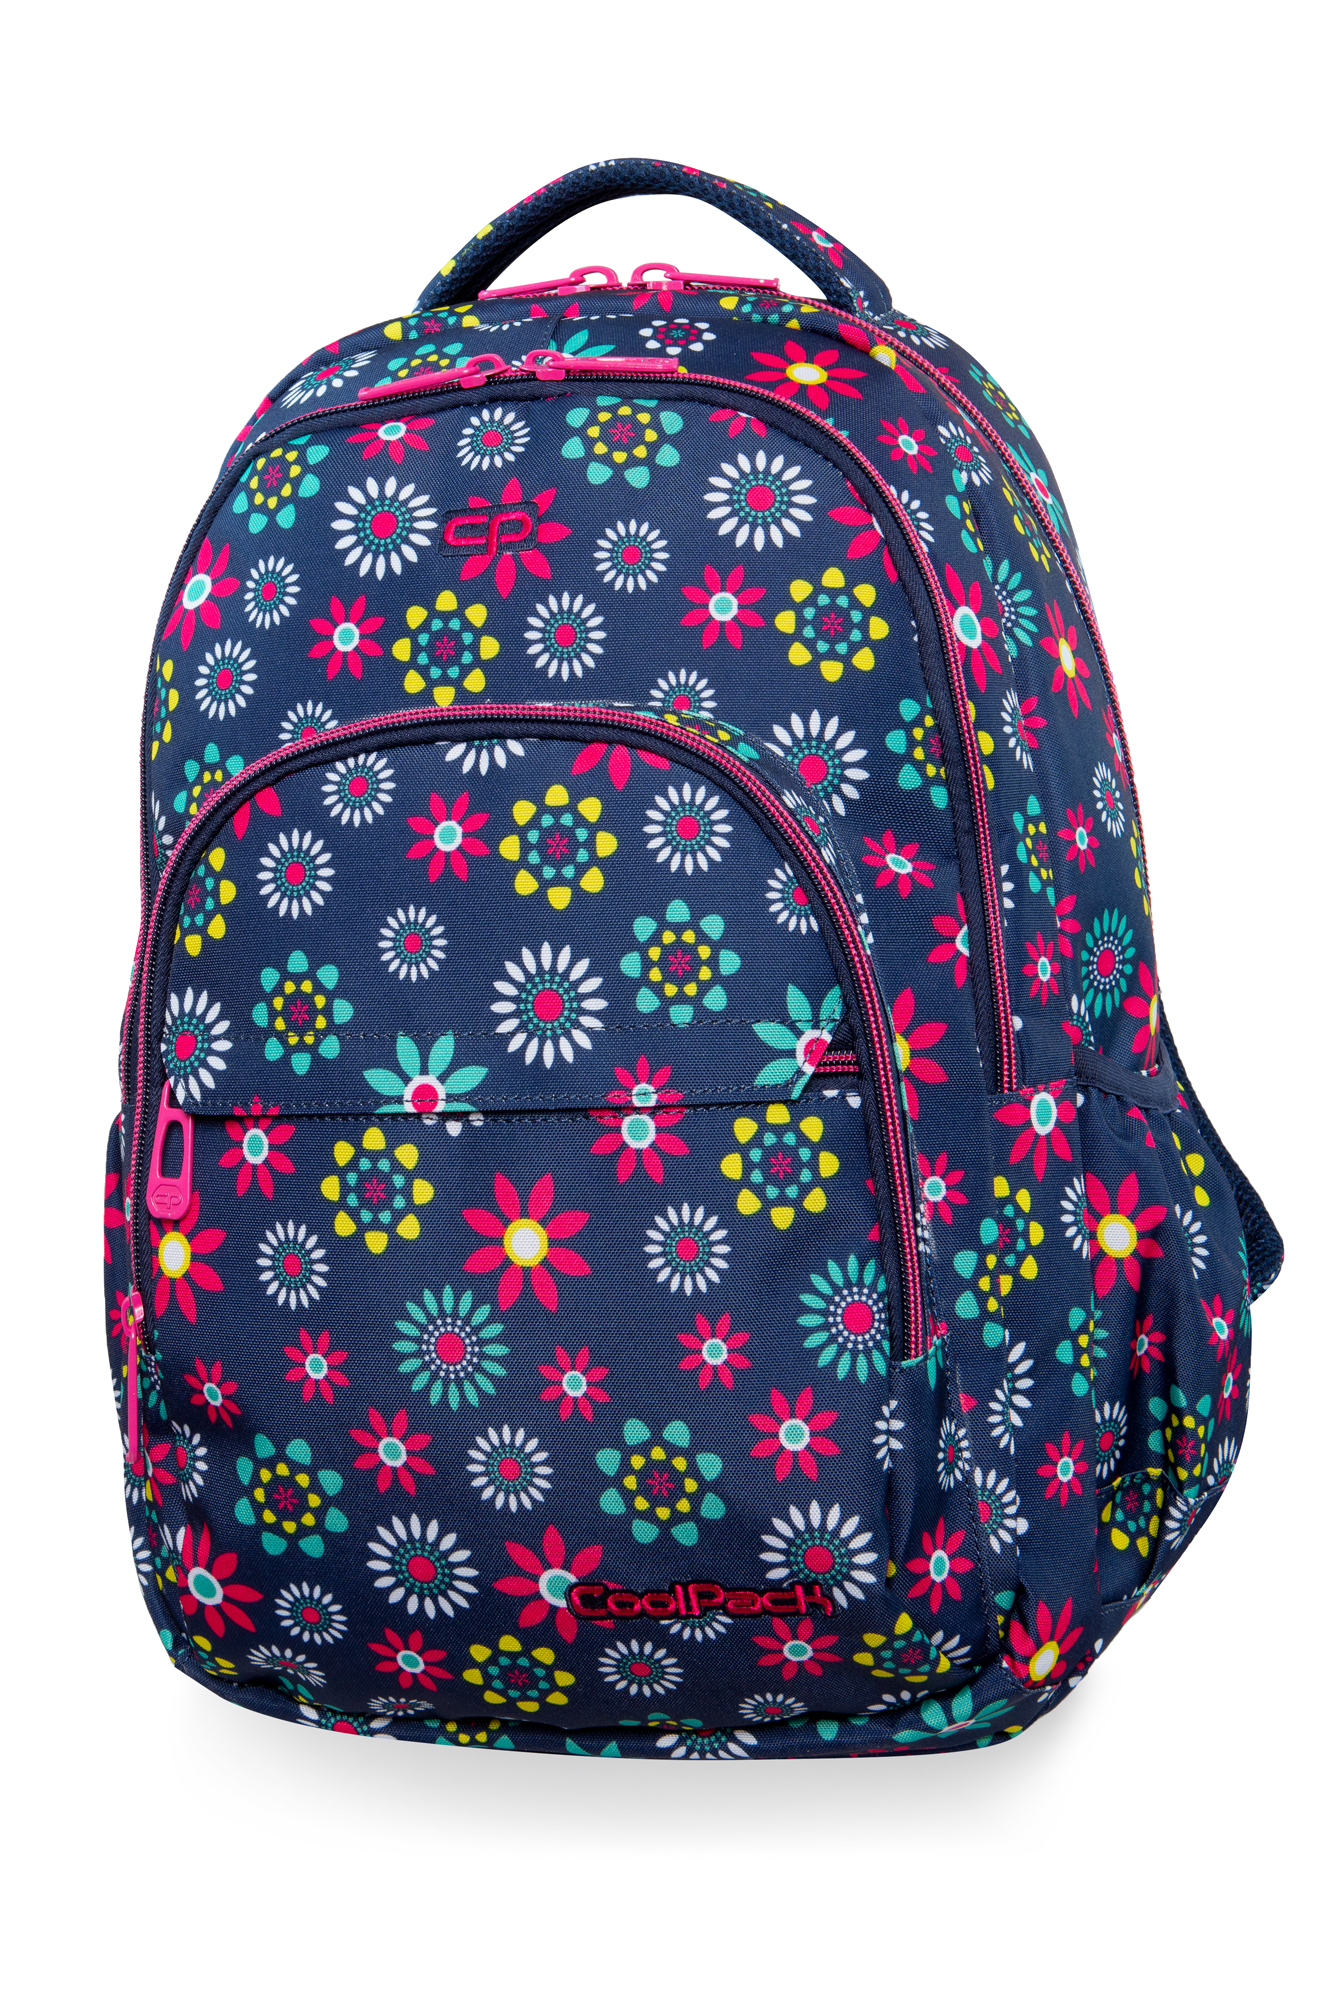 Coolpack - basic plus - youth backpack - hippie daisy